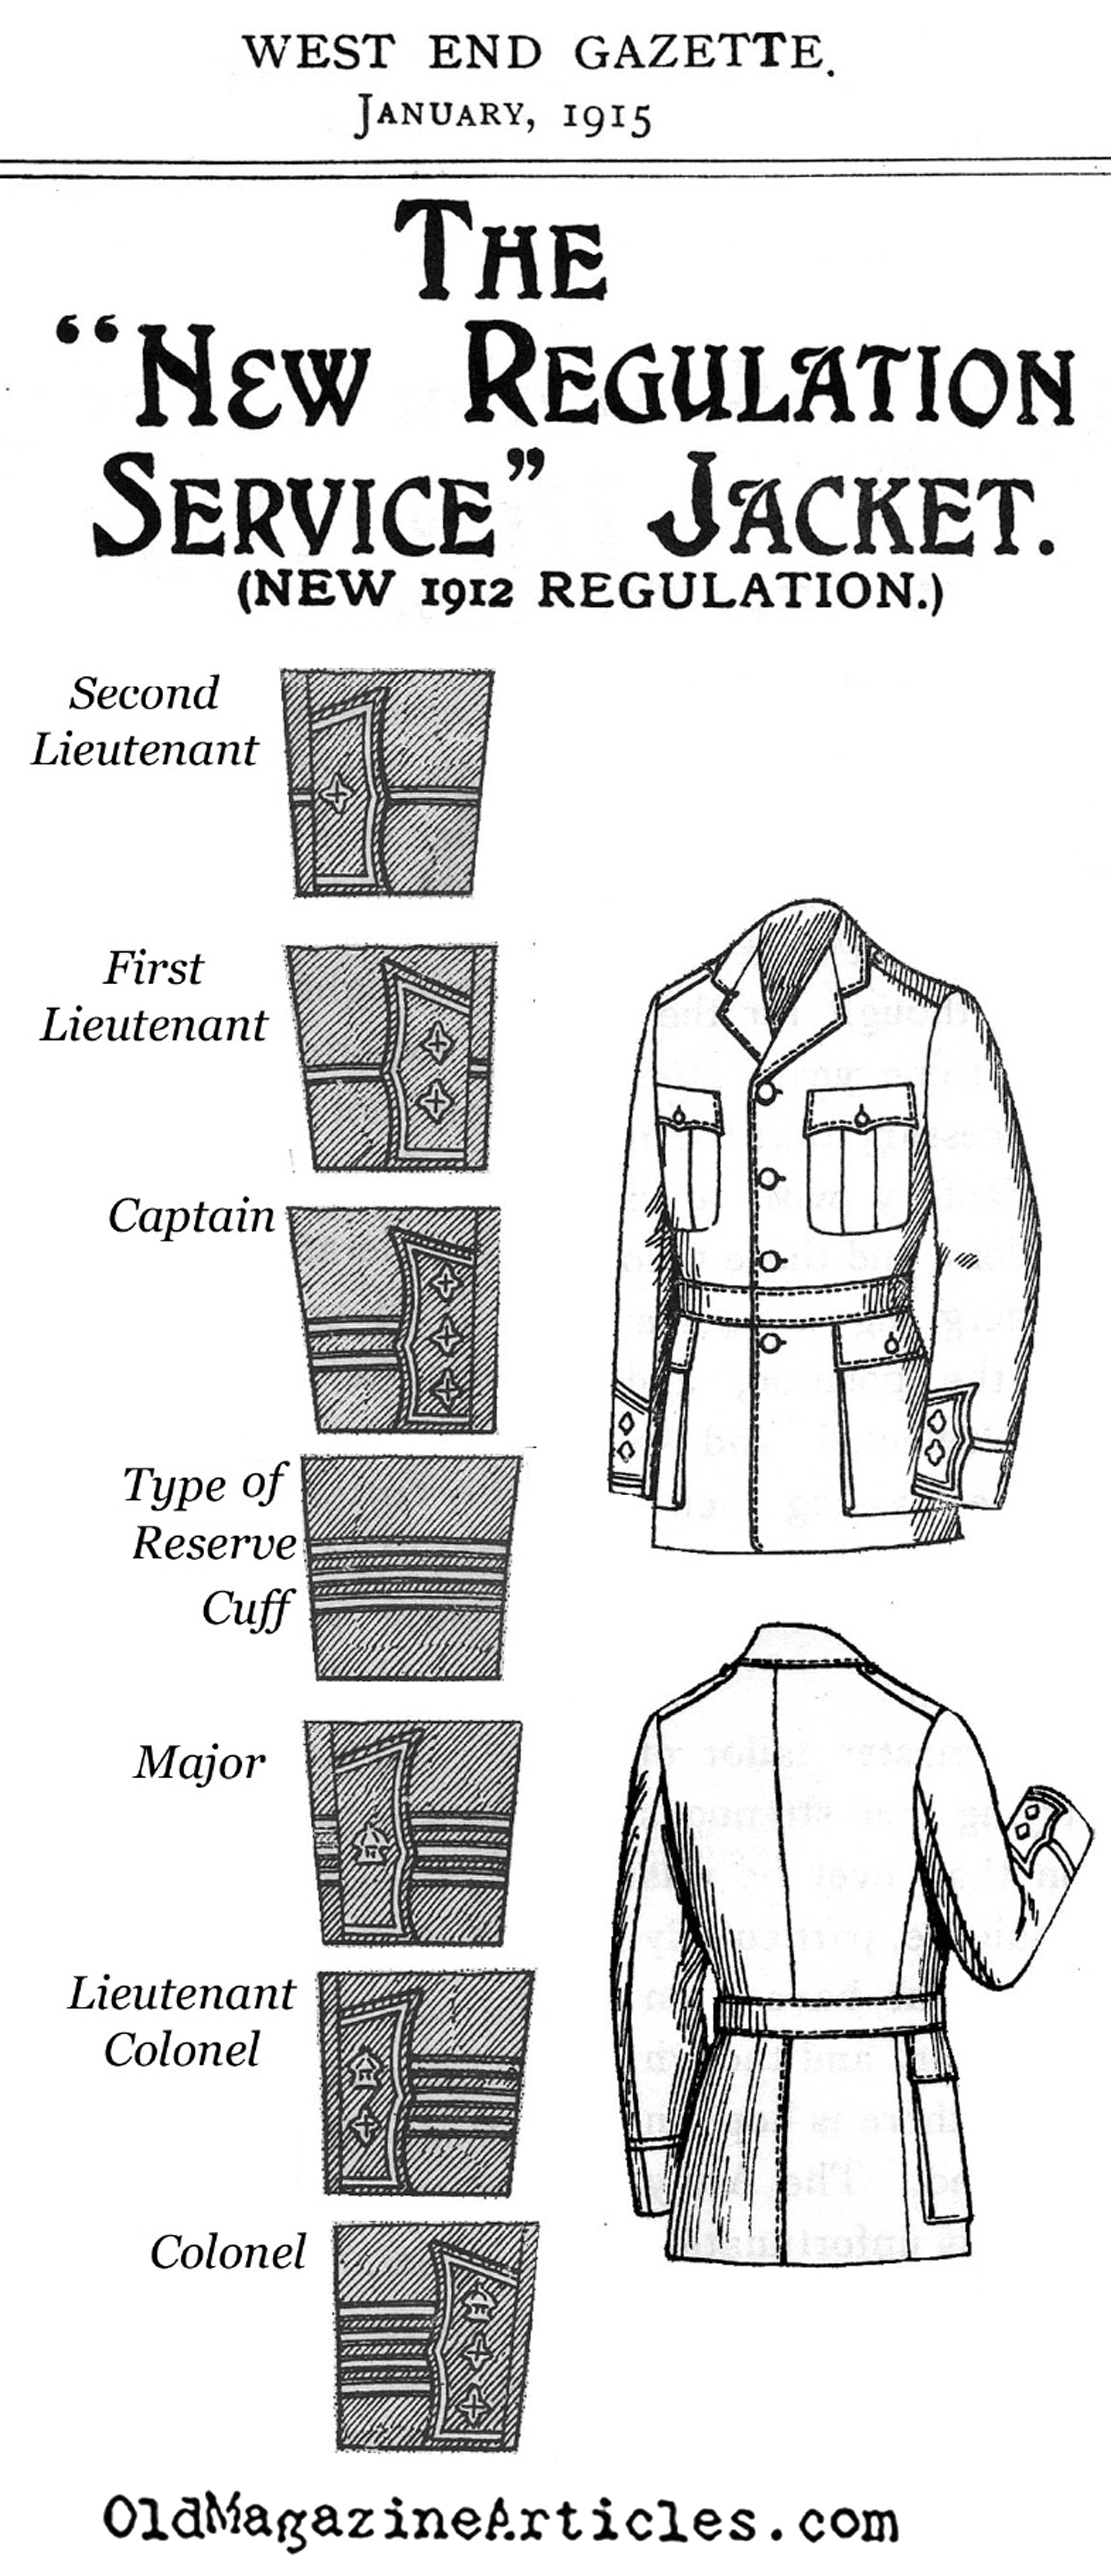 The British 1912 Officer Jacket (West End Gazette, 1915)